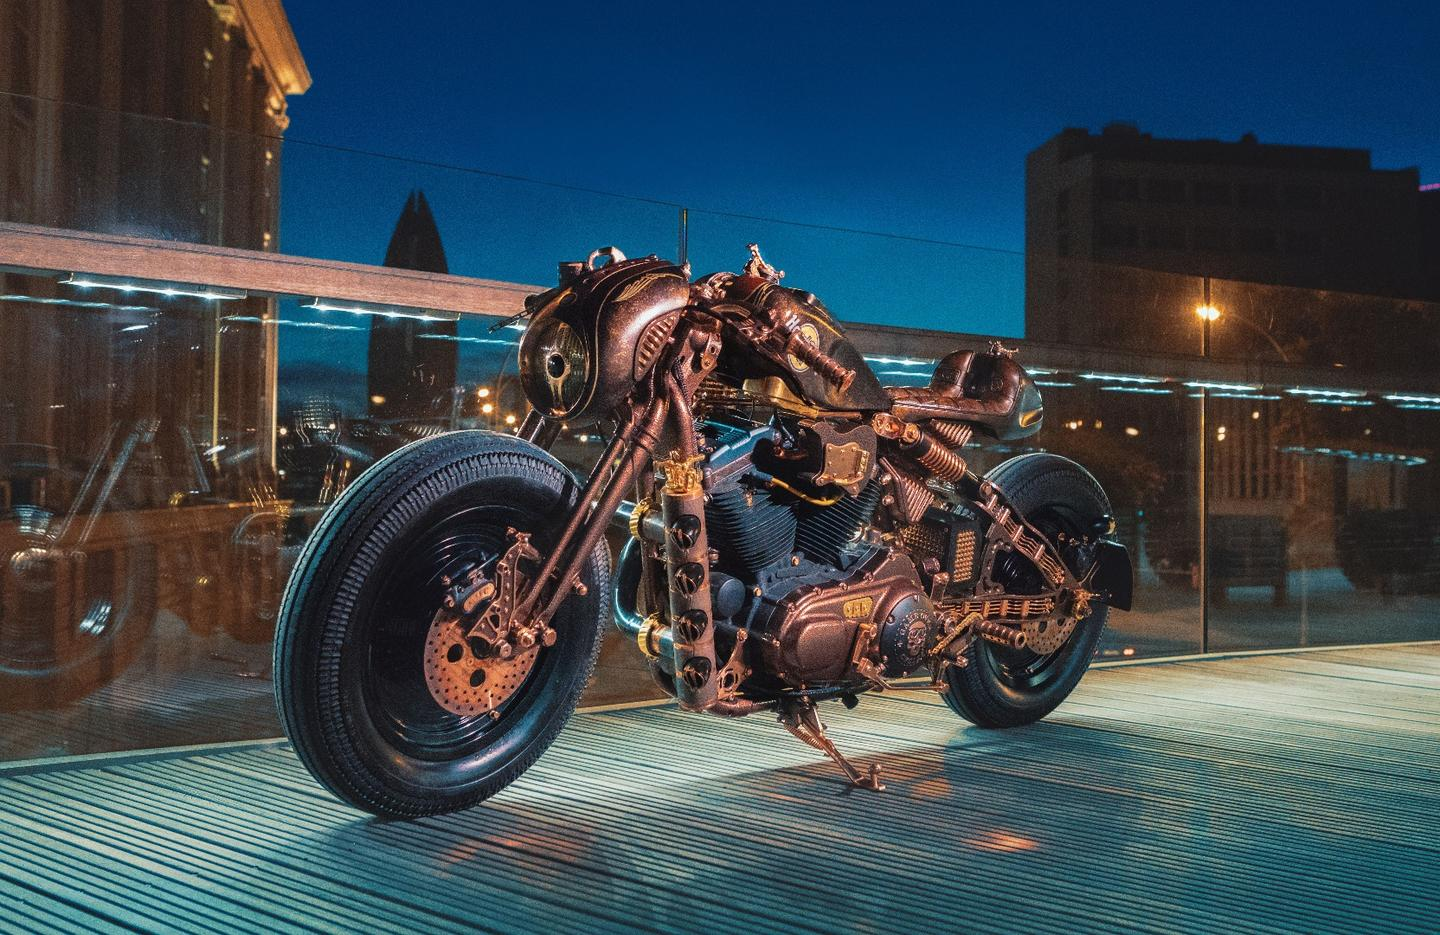 References to the world of music and music gear feature heavily on the Cafe Racer by Game Over Cycles